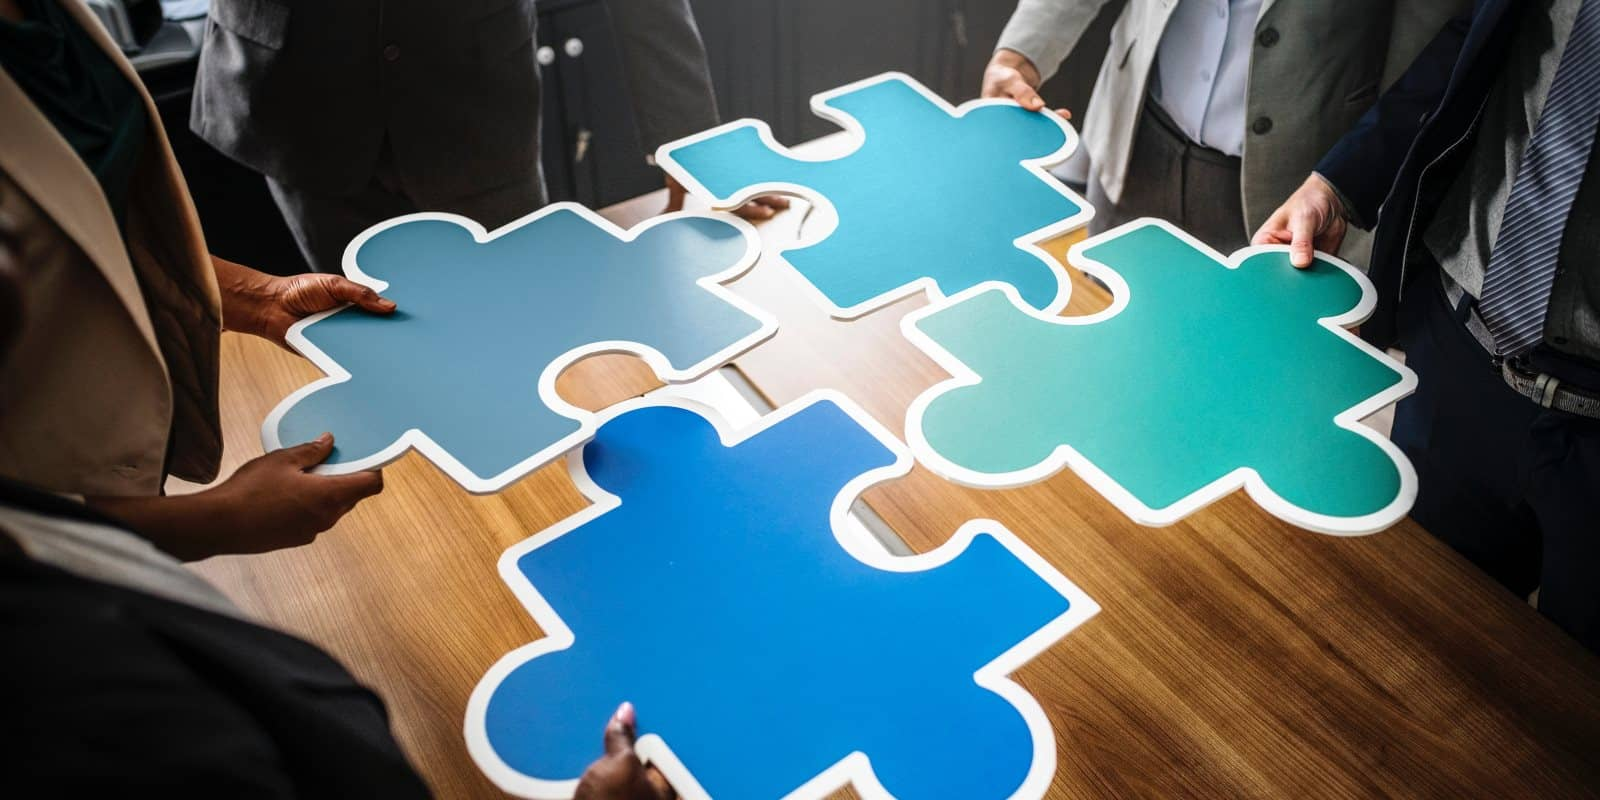 Group of business professionals with large puzzle pieces